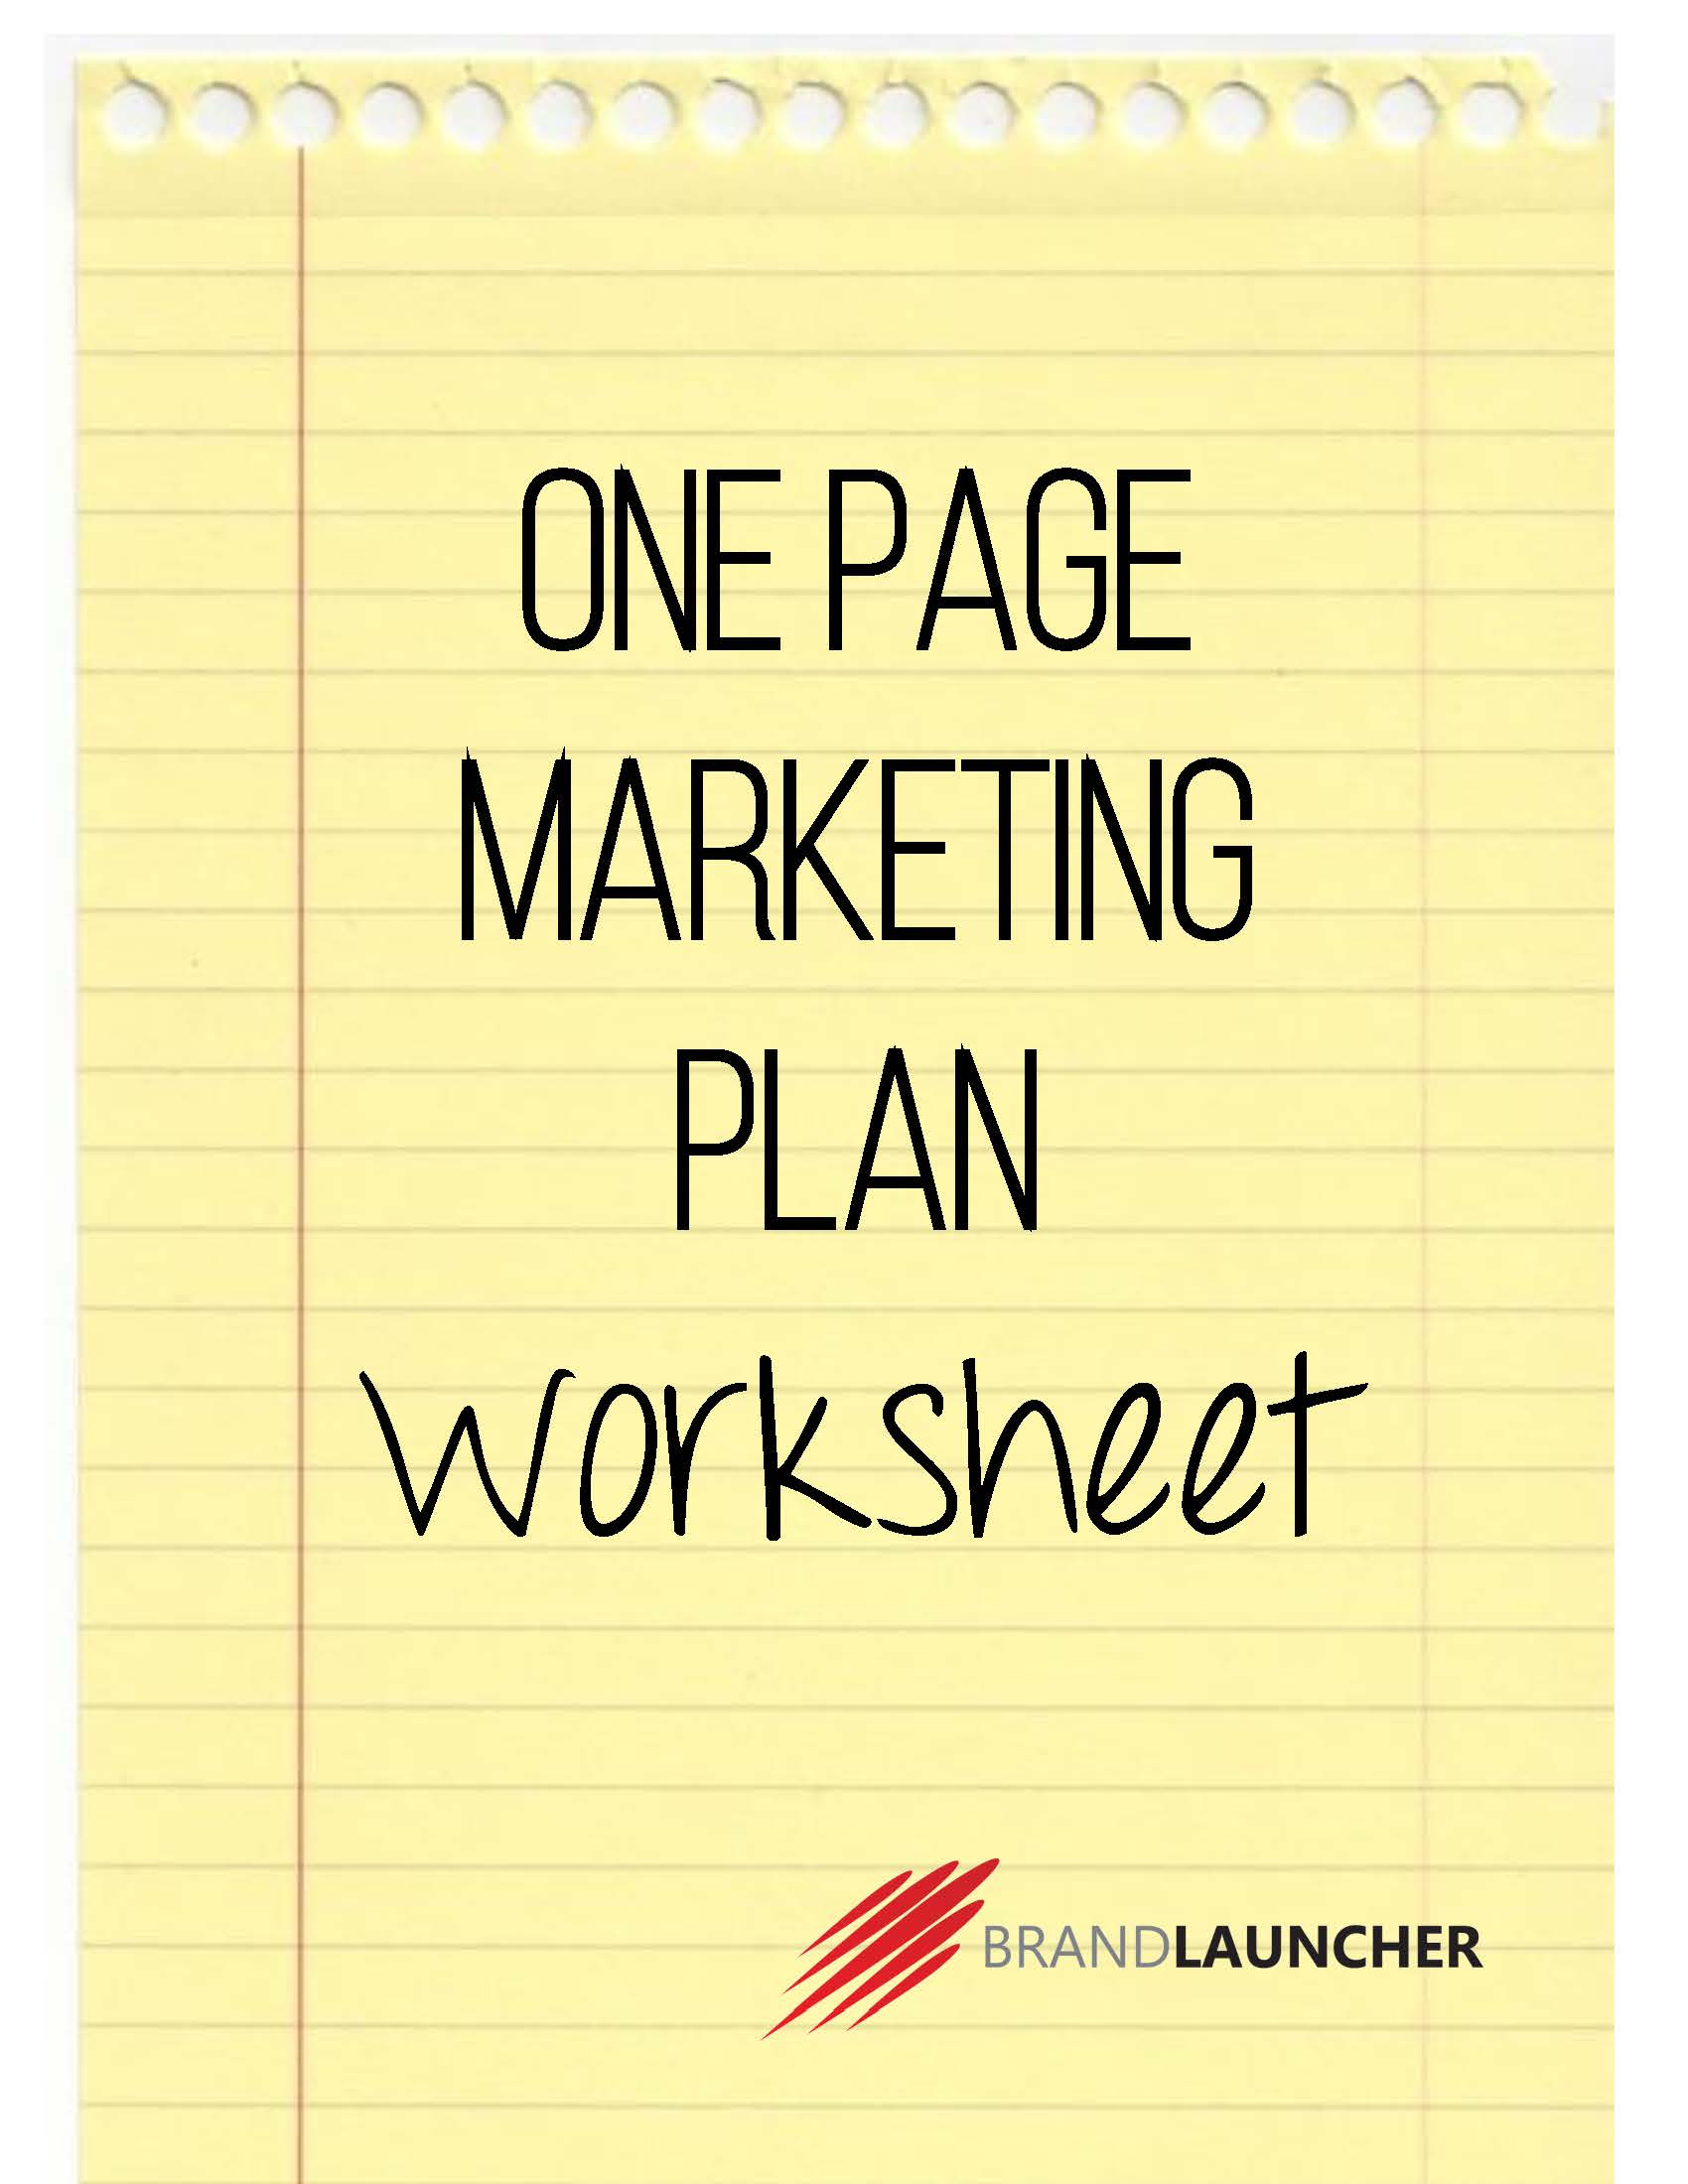 marketing plan work sheet